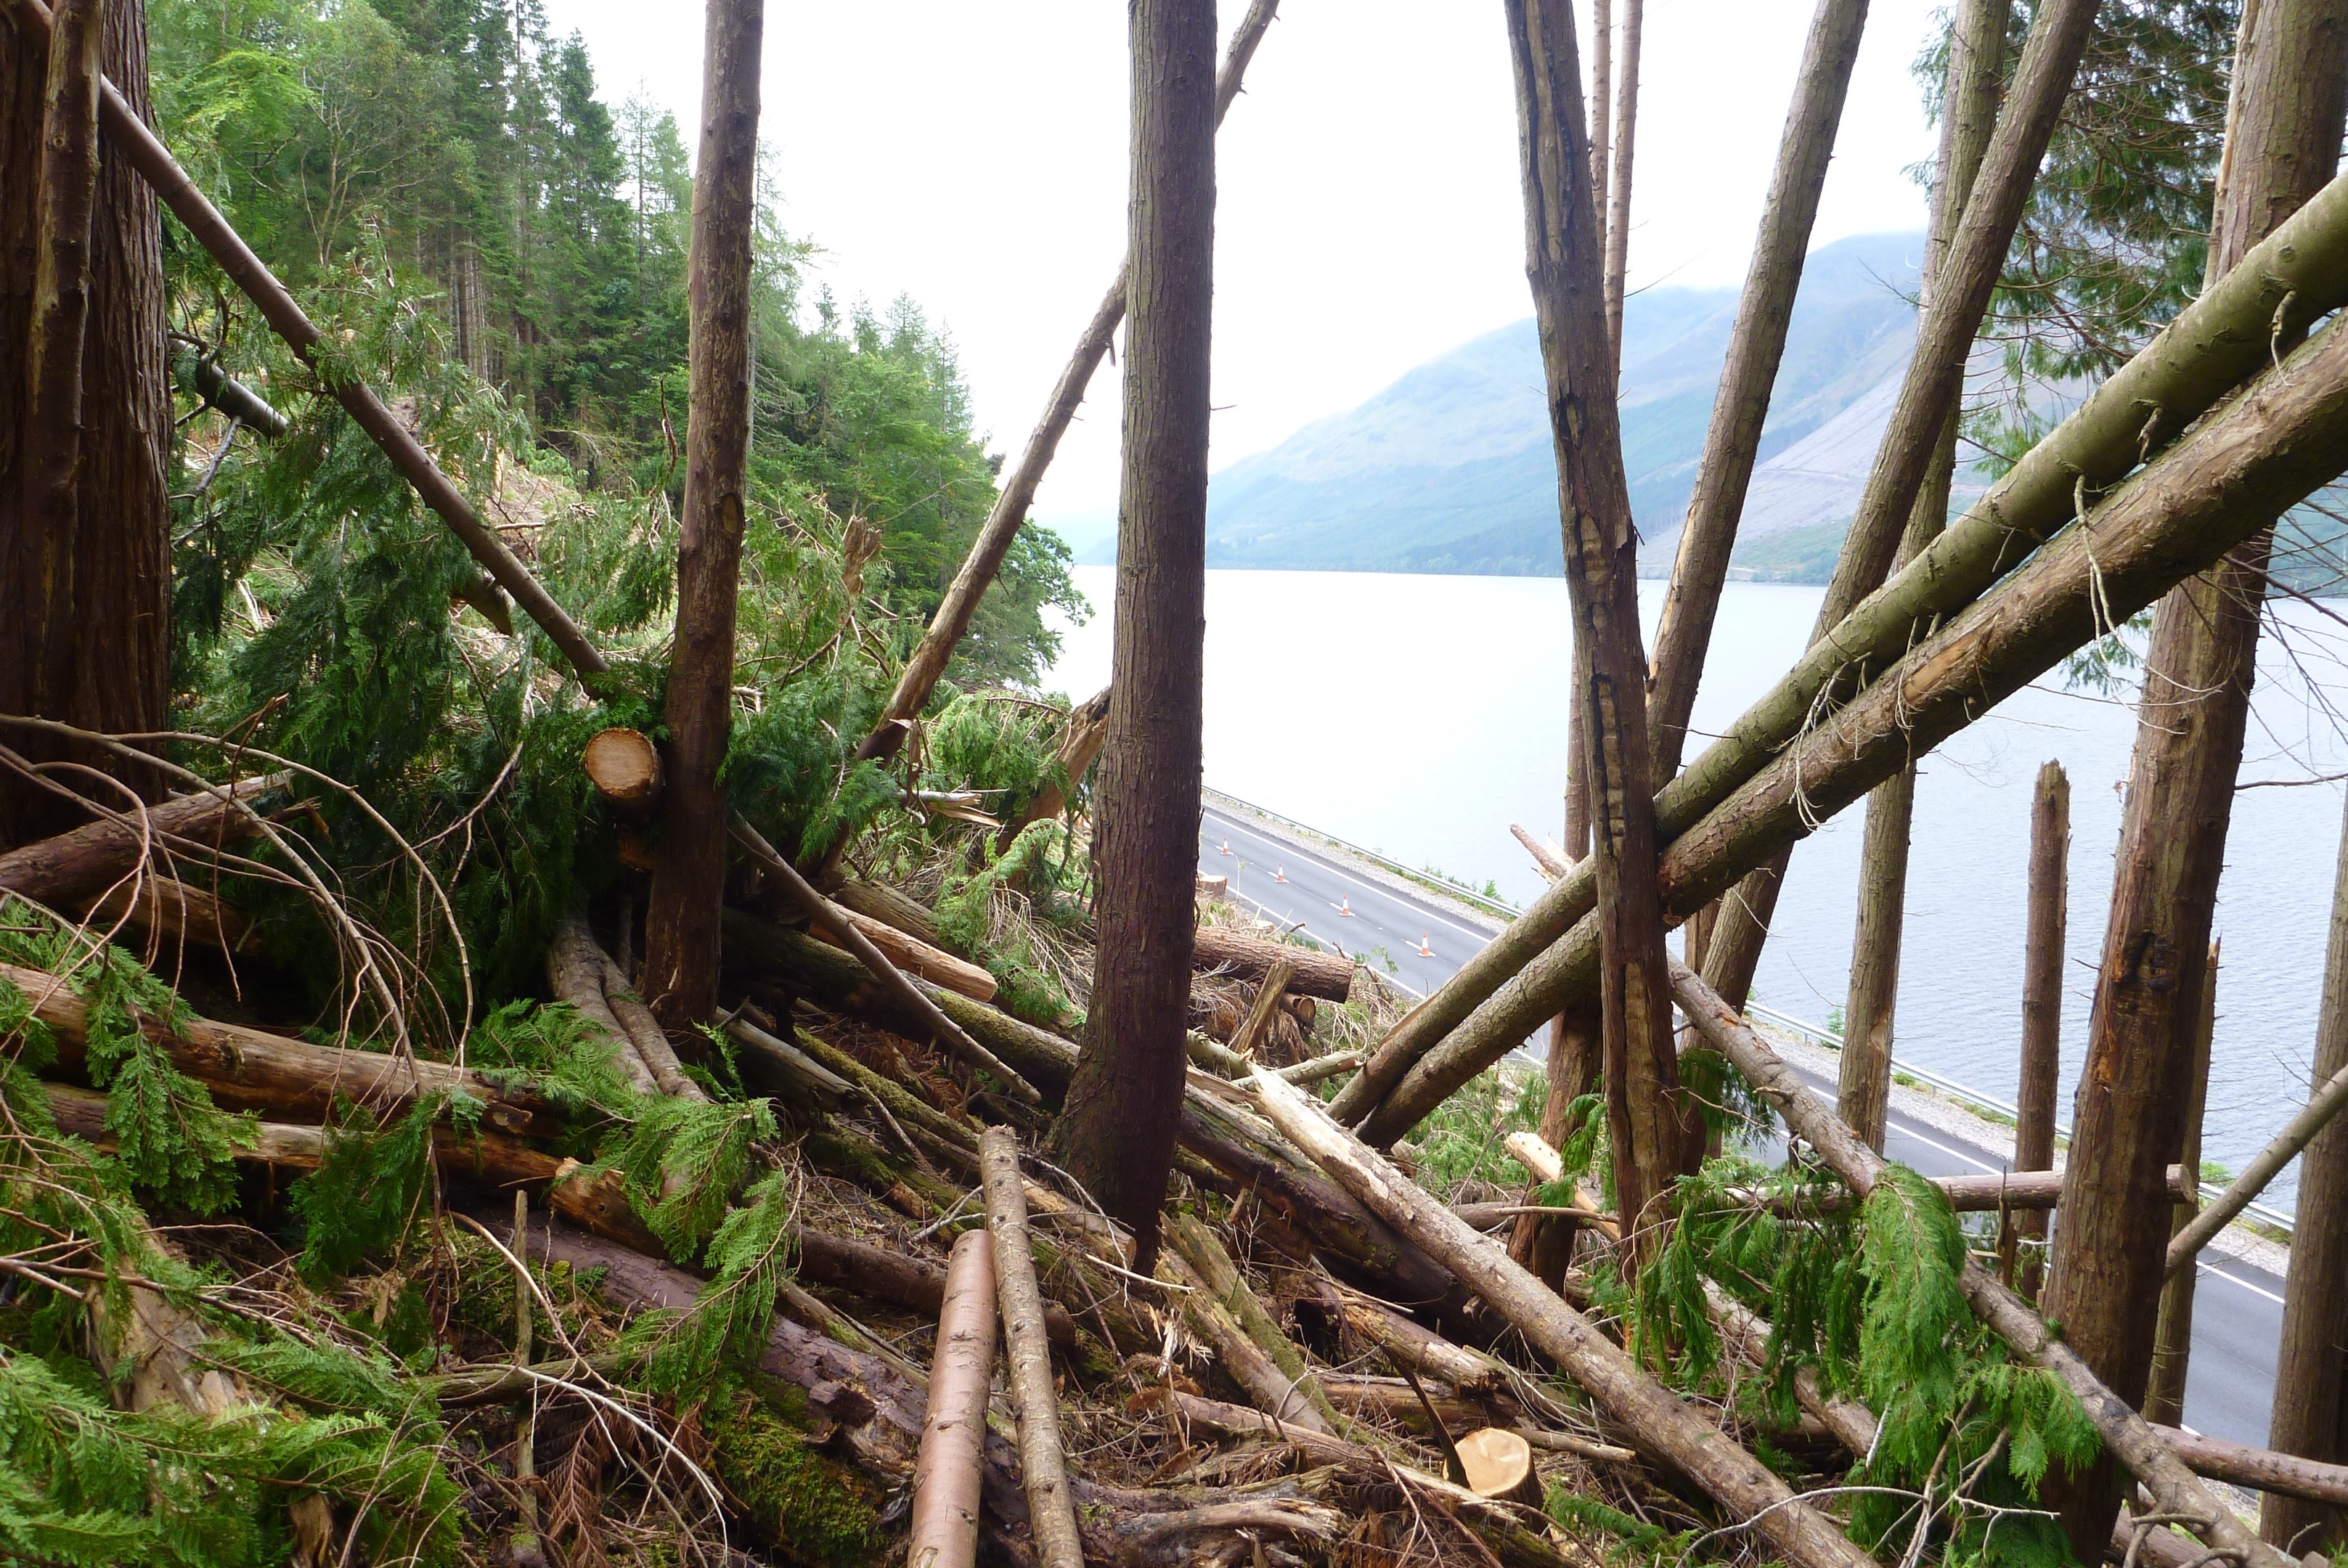 Next phase of tree felling operations above A82 to start in September